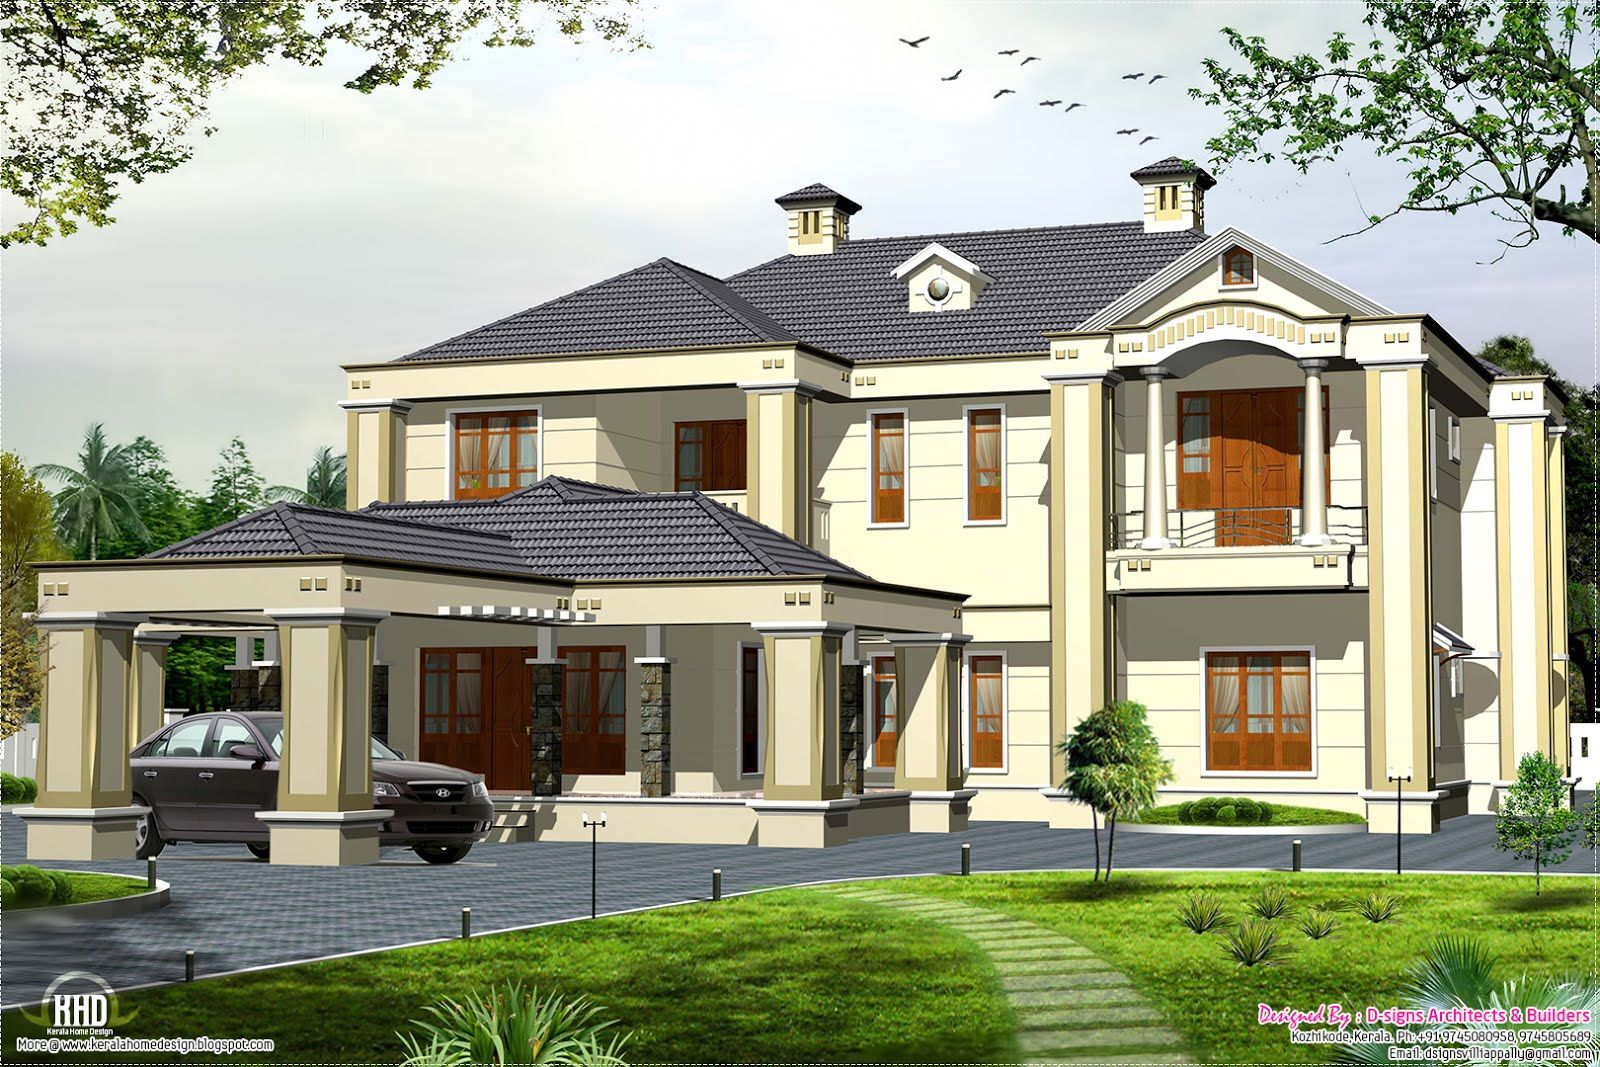 5 bedroom homes colonial style 5 bedroom victorian style house kerala home design - Colonial Design Homes